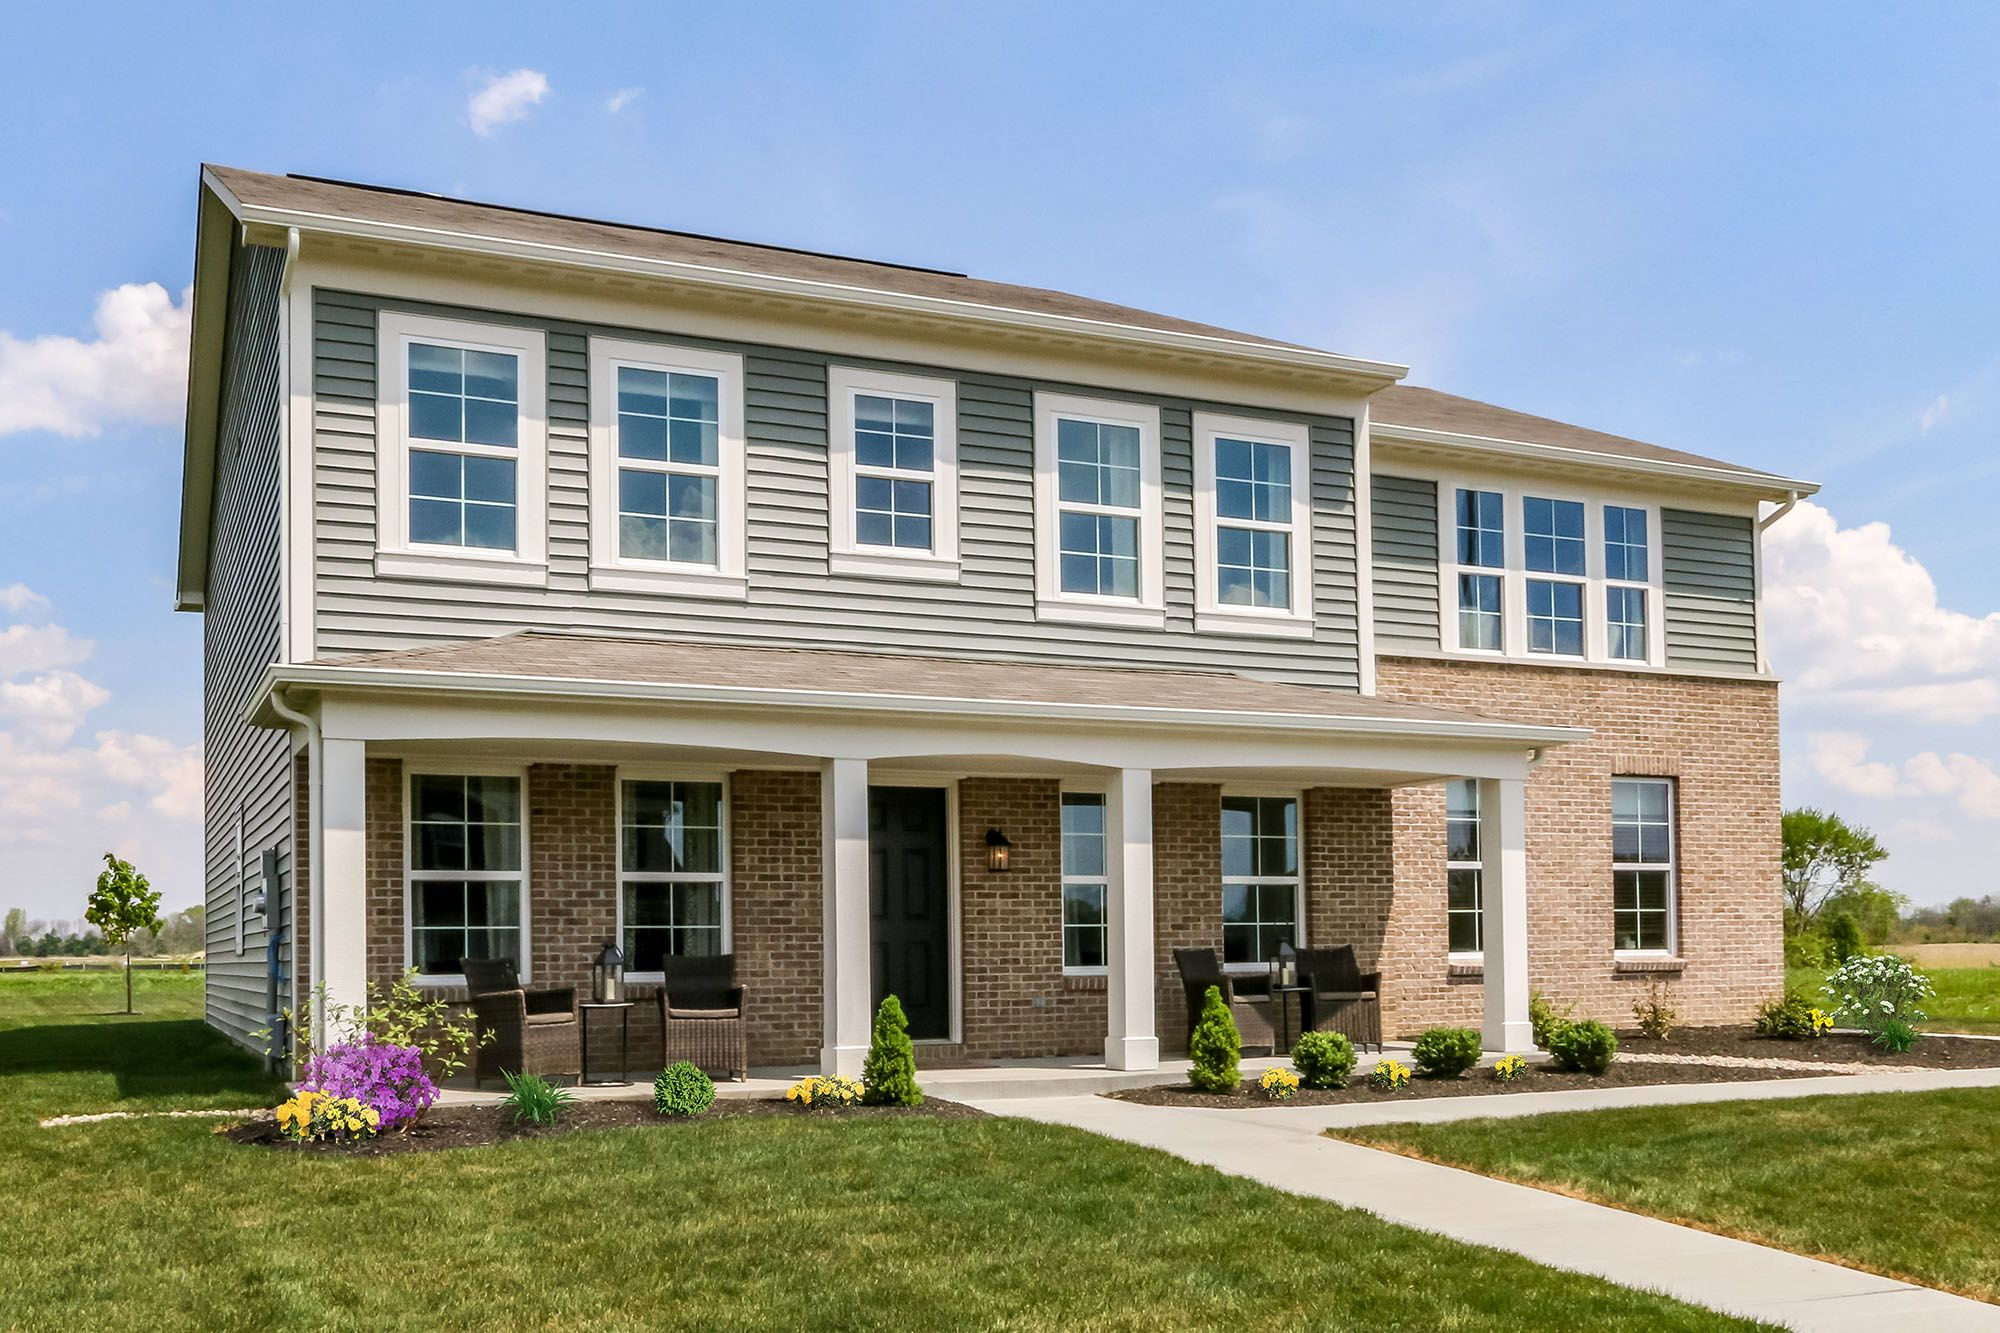 Villas At berland in Pataskala, OH, New Homes & Floor Plans by ... on drees design center, rockford homes design center, mi homes design center, ryan homes design center, ryland homes design center, david weekley homes design center, beazer homes design center,